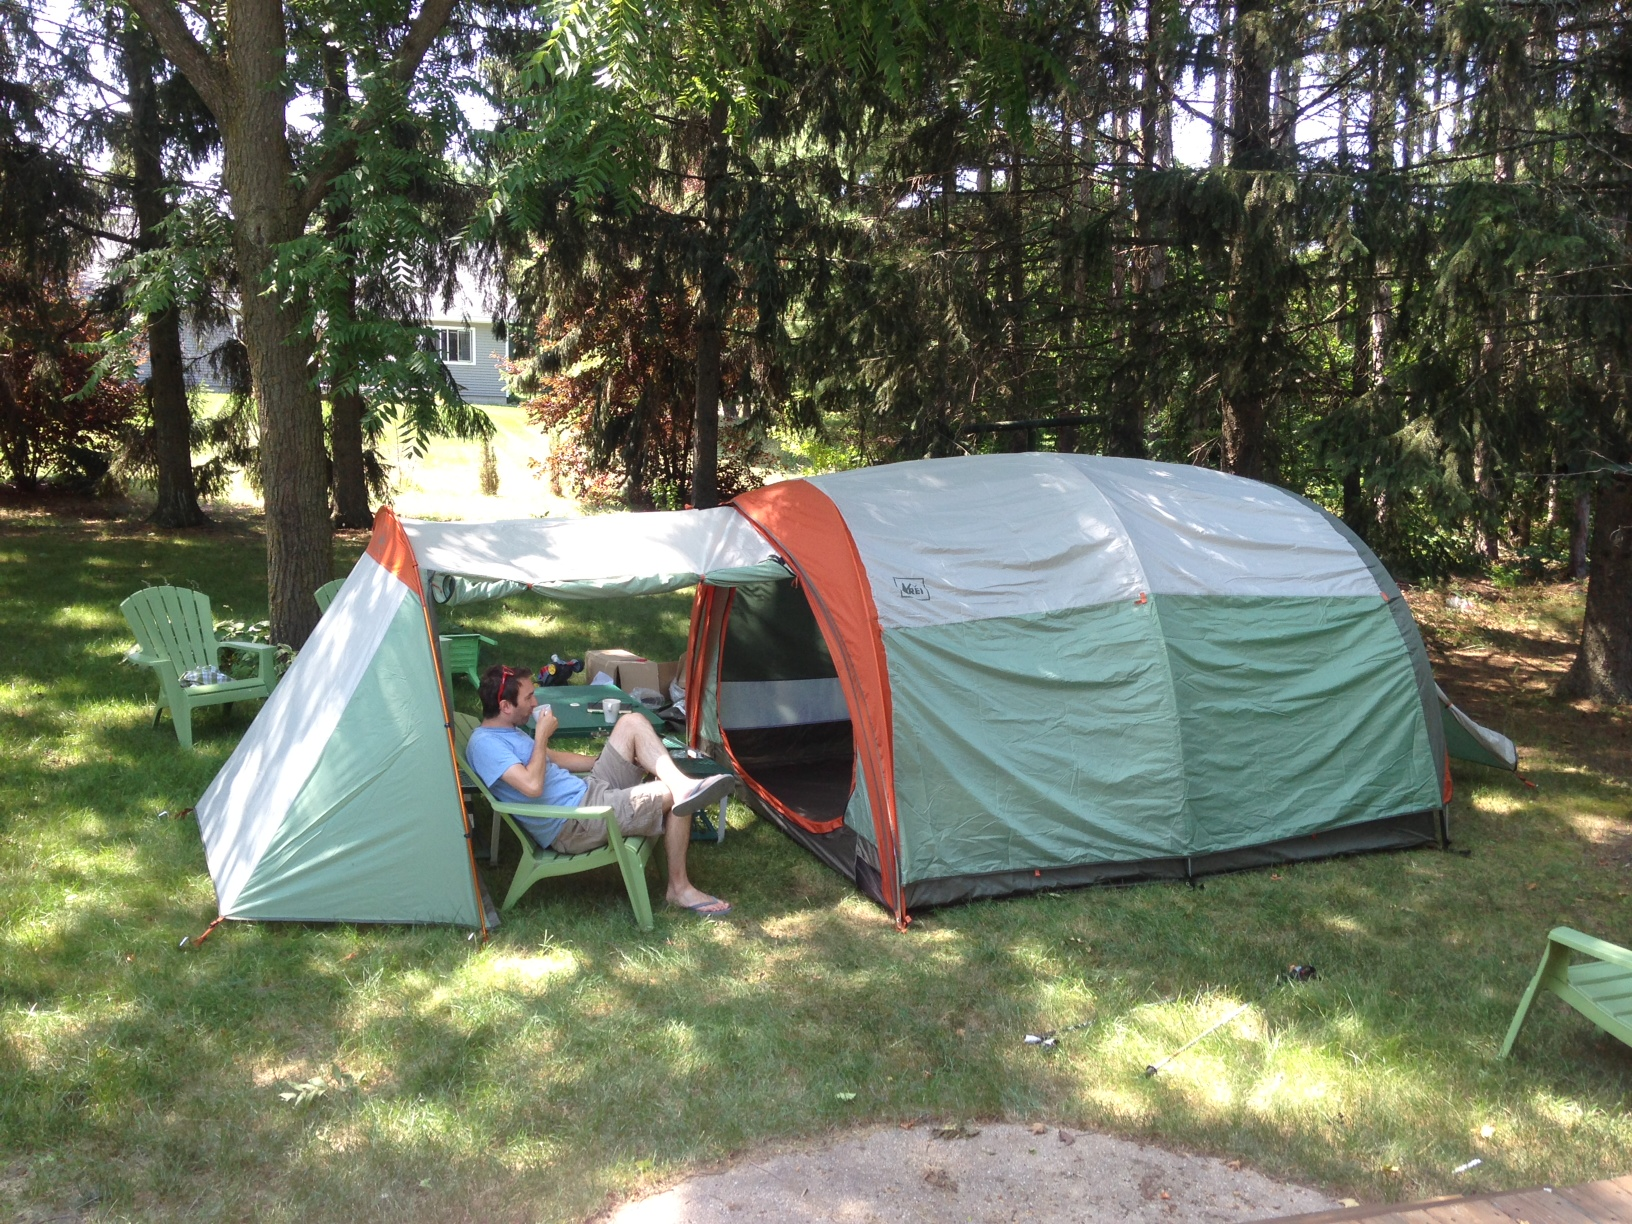 Best Family Cing Tent Hobitat 6 From Rei You : rei tents 6 person - memphite.com